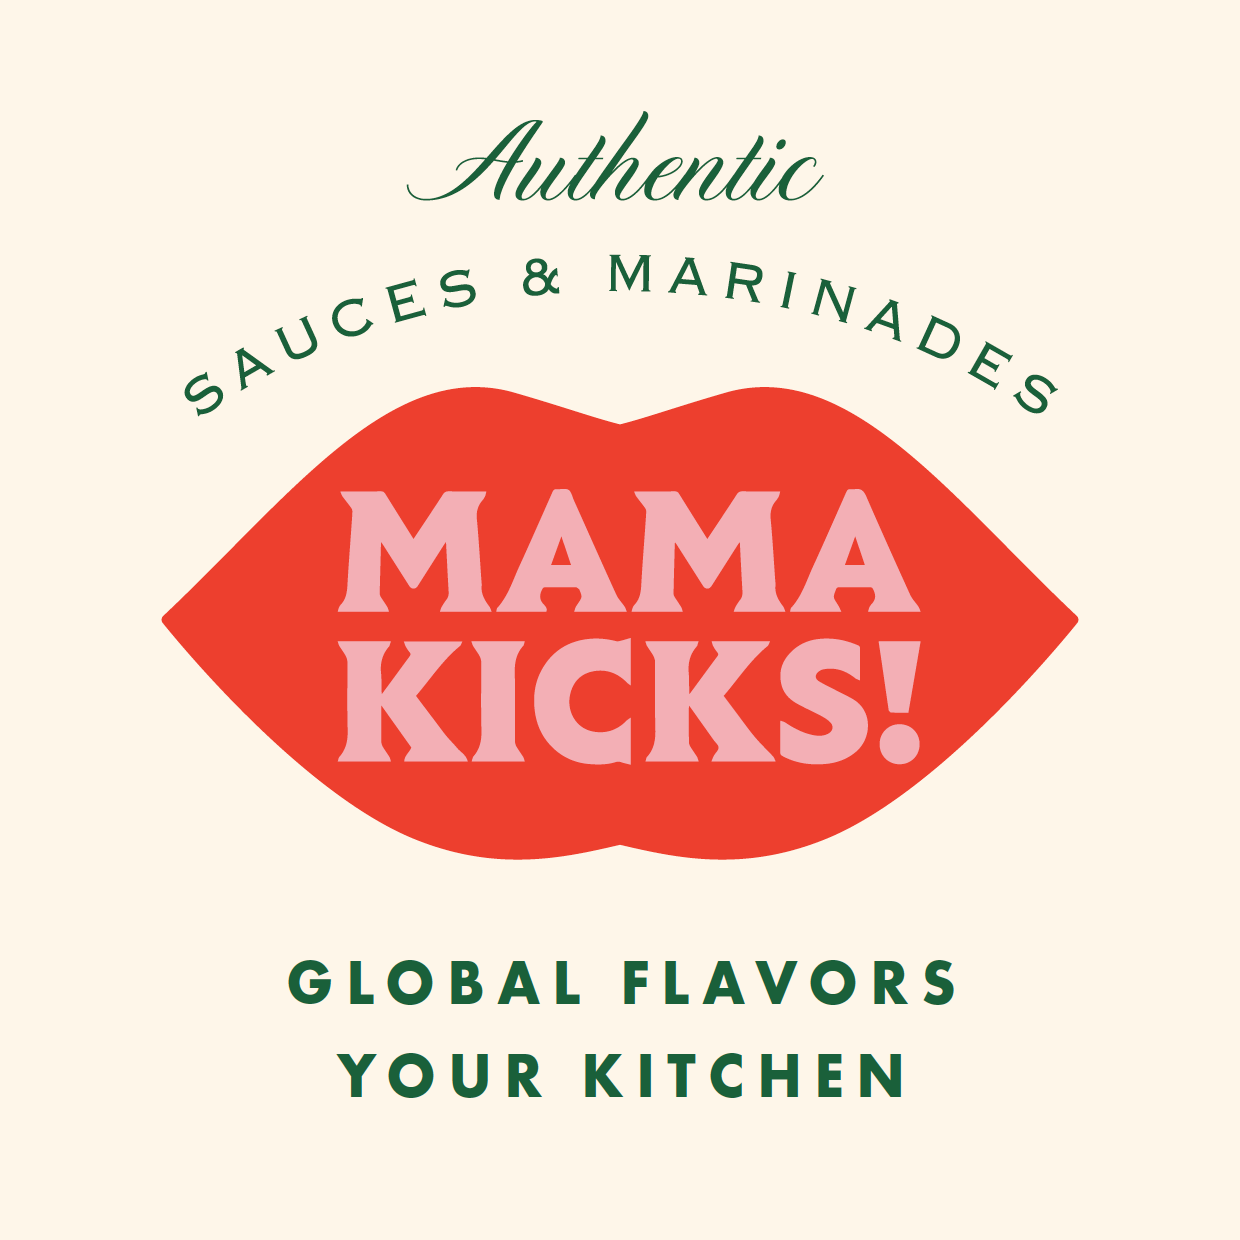 Mama Kicks - The meals you eat around the family dining table shaped you and what you like. Homemade meals are a staple in everyone's upbringing, which is why we're on a mission to share family meals from across the world with your family. Nothing tastes as good as when Mom makes it, and now that TLC comes in a bottle. Mama Kicks makes globalizing your kitchen, quite simple. You no longer have to be limited to your go-to dishes or heating up leftovers in the microwave. Expanding your culinary repertoire with global flavor is simple and conveniently available in your pantry.